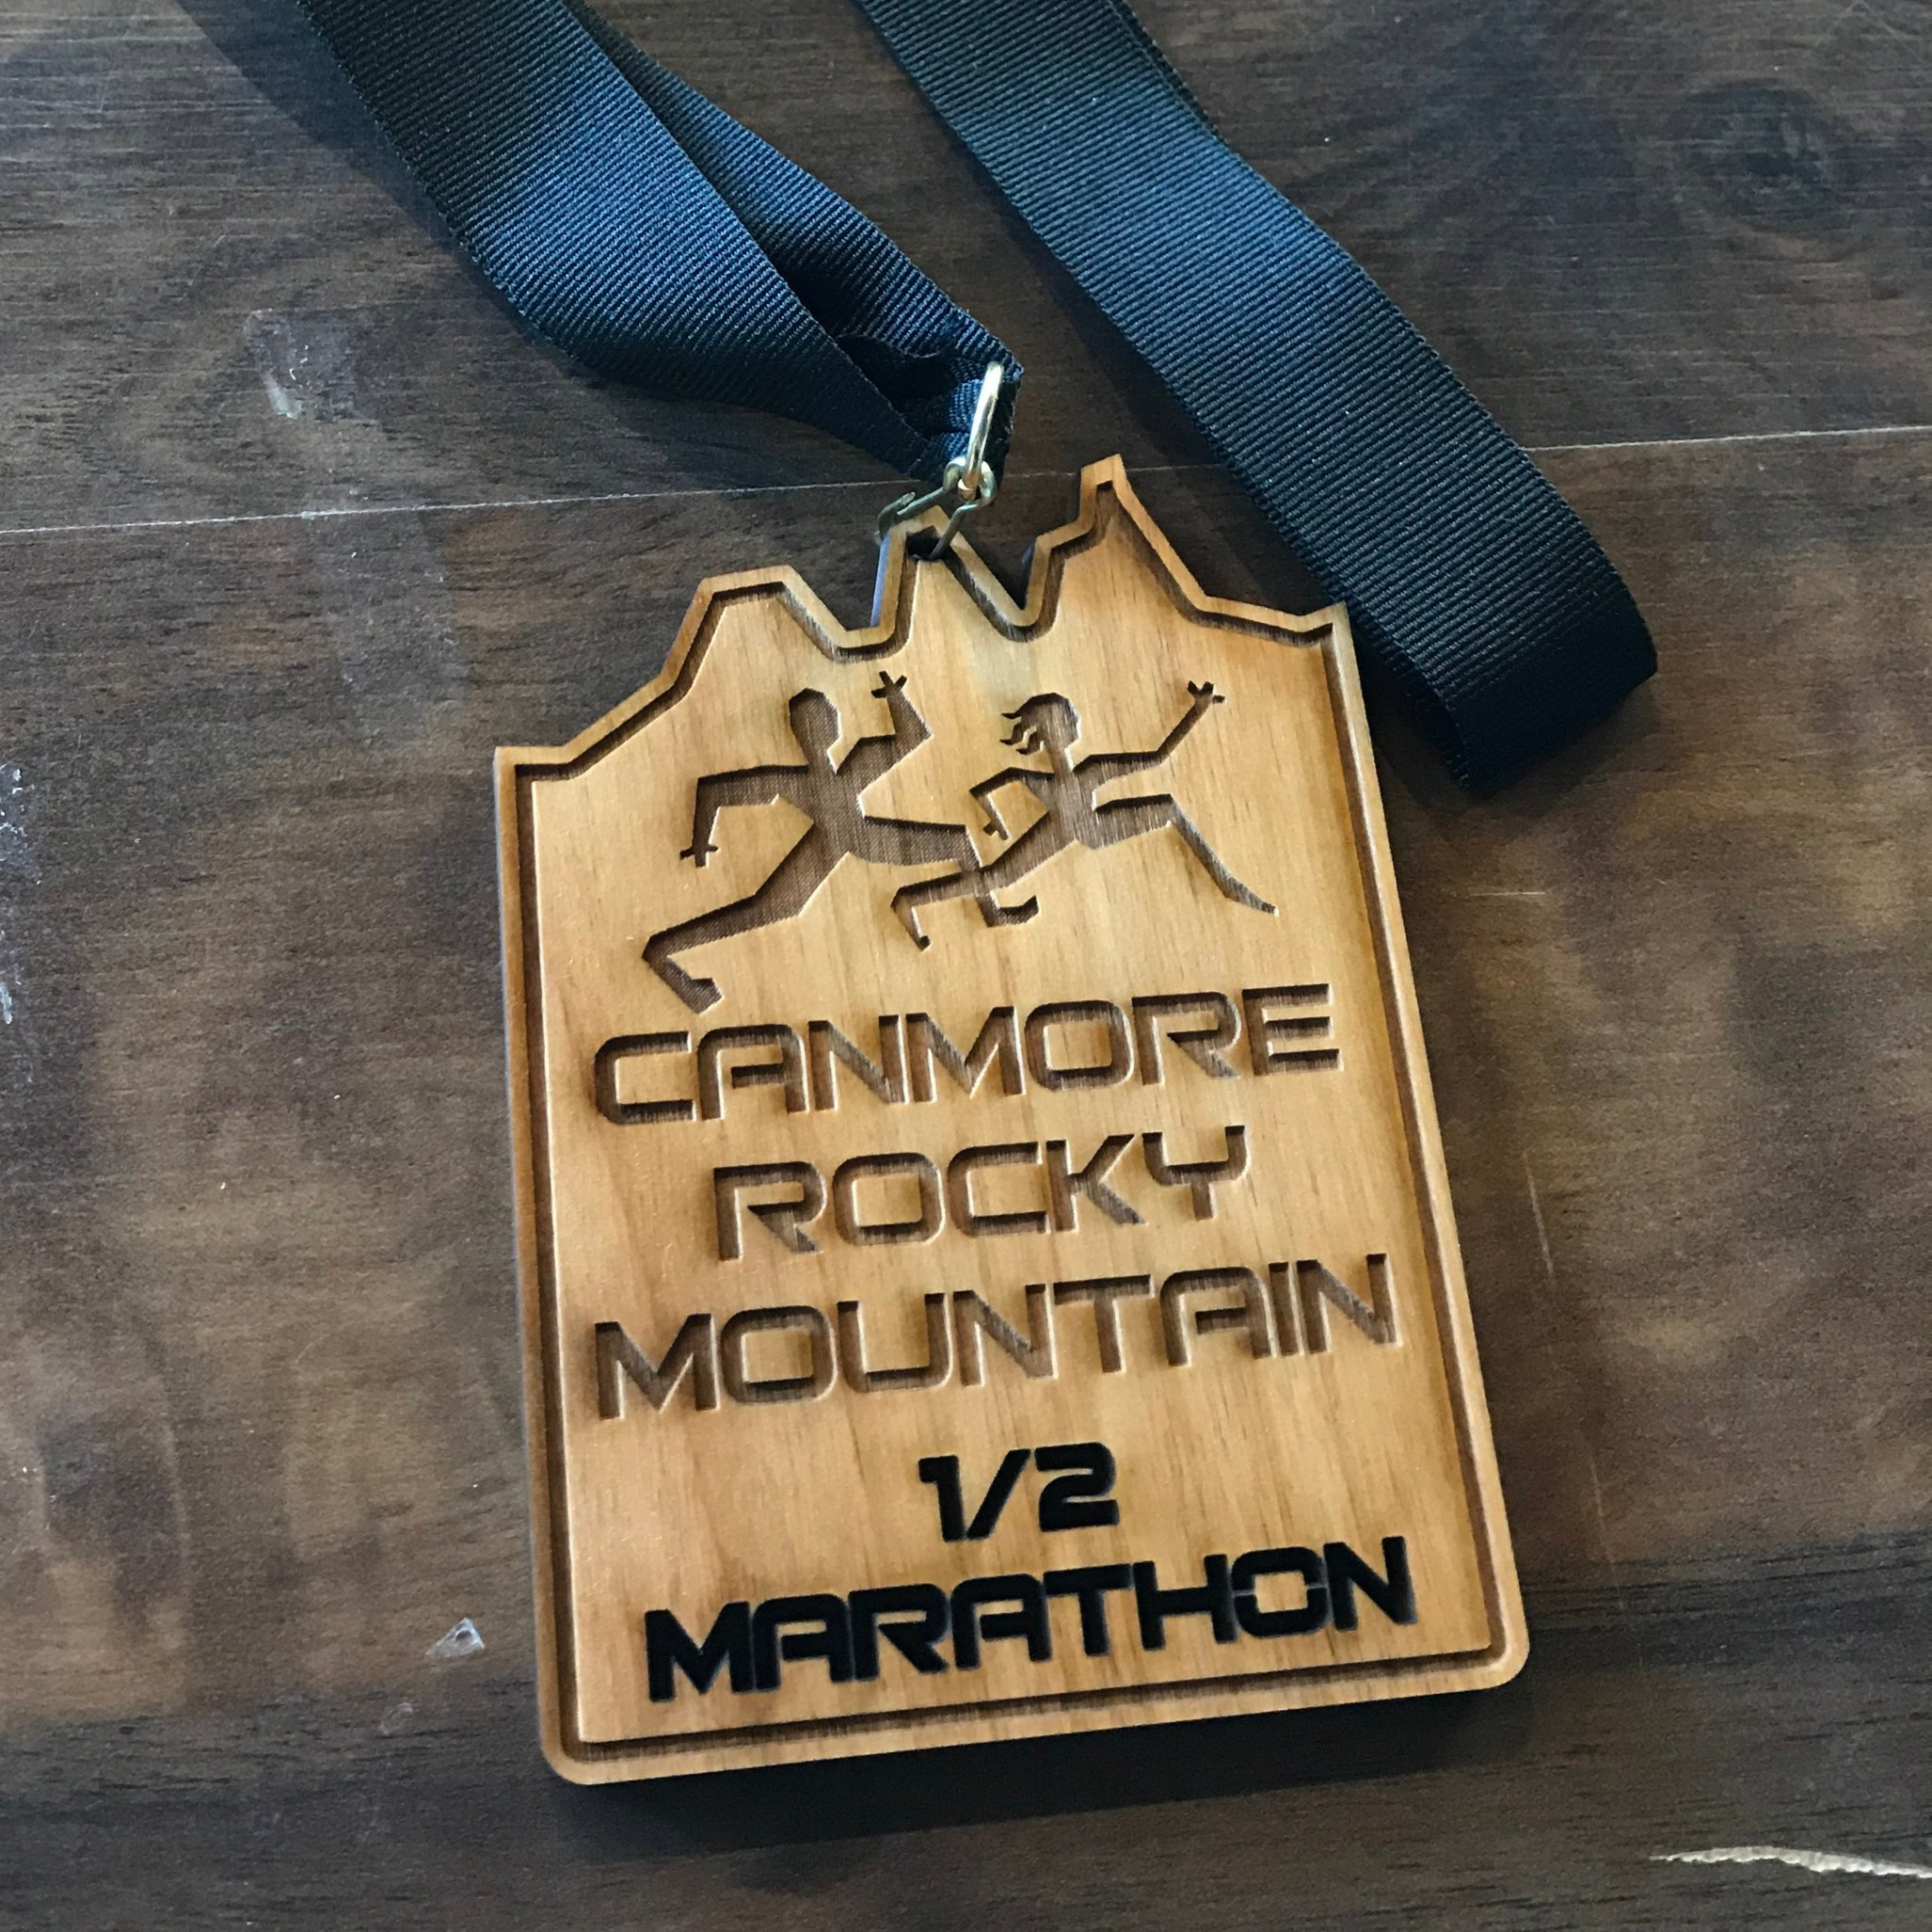 NEW! ALL runners in the Half Marathon, 10K & 5K races will this year receive a finisher medal. The medals are locally made, and crafted from BC red alder wood.